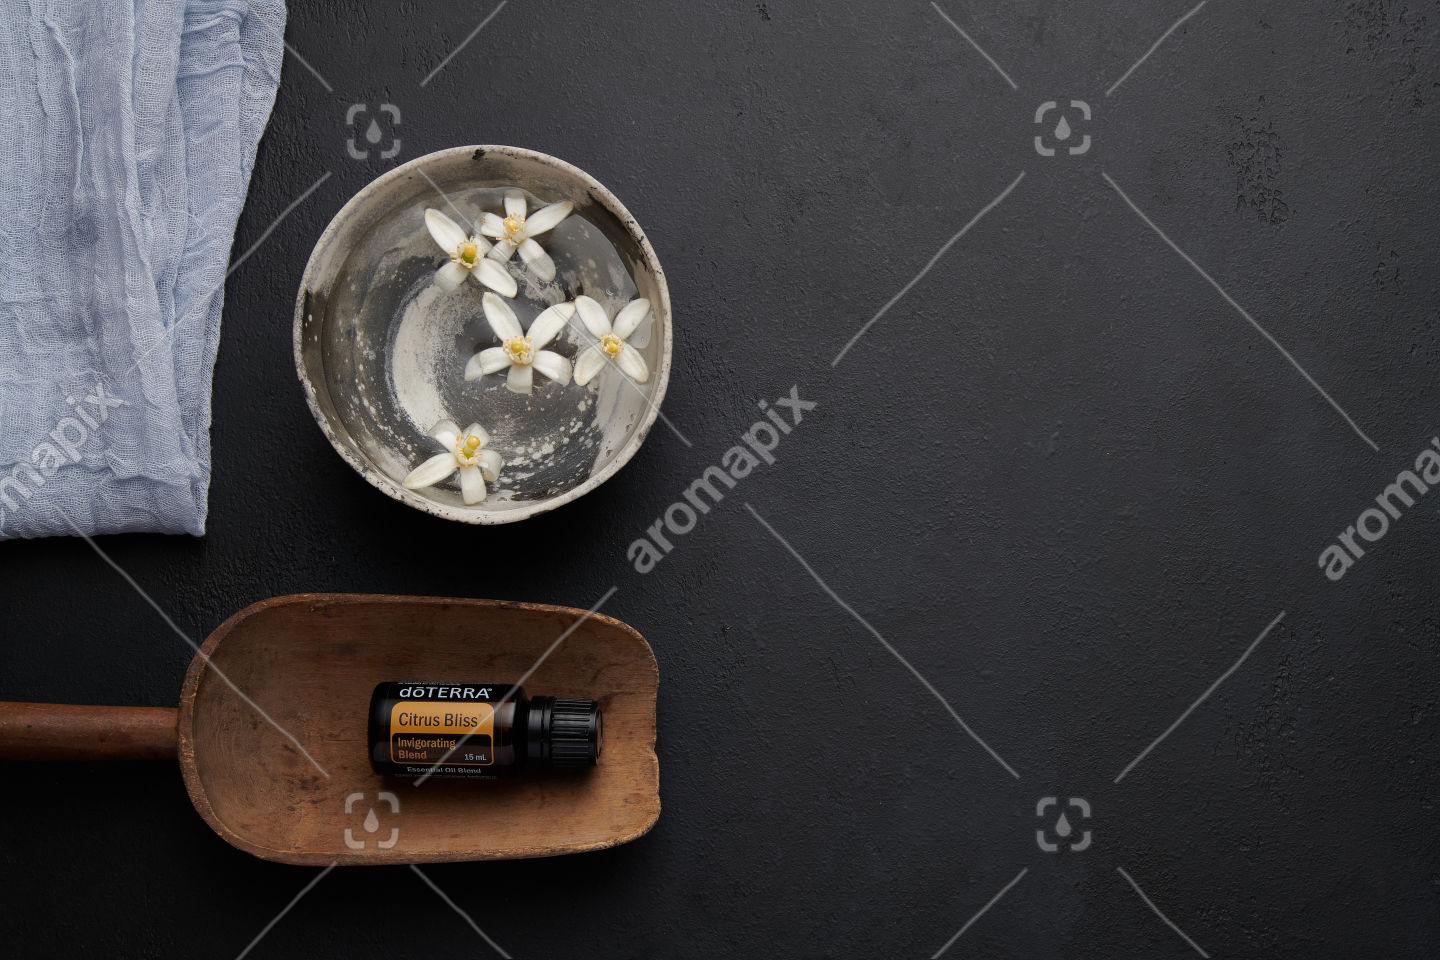 doTERRA Citrus Bliss in a wooden scoop with orange blosson on black